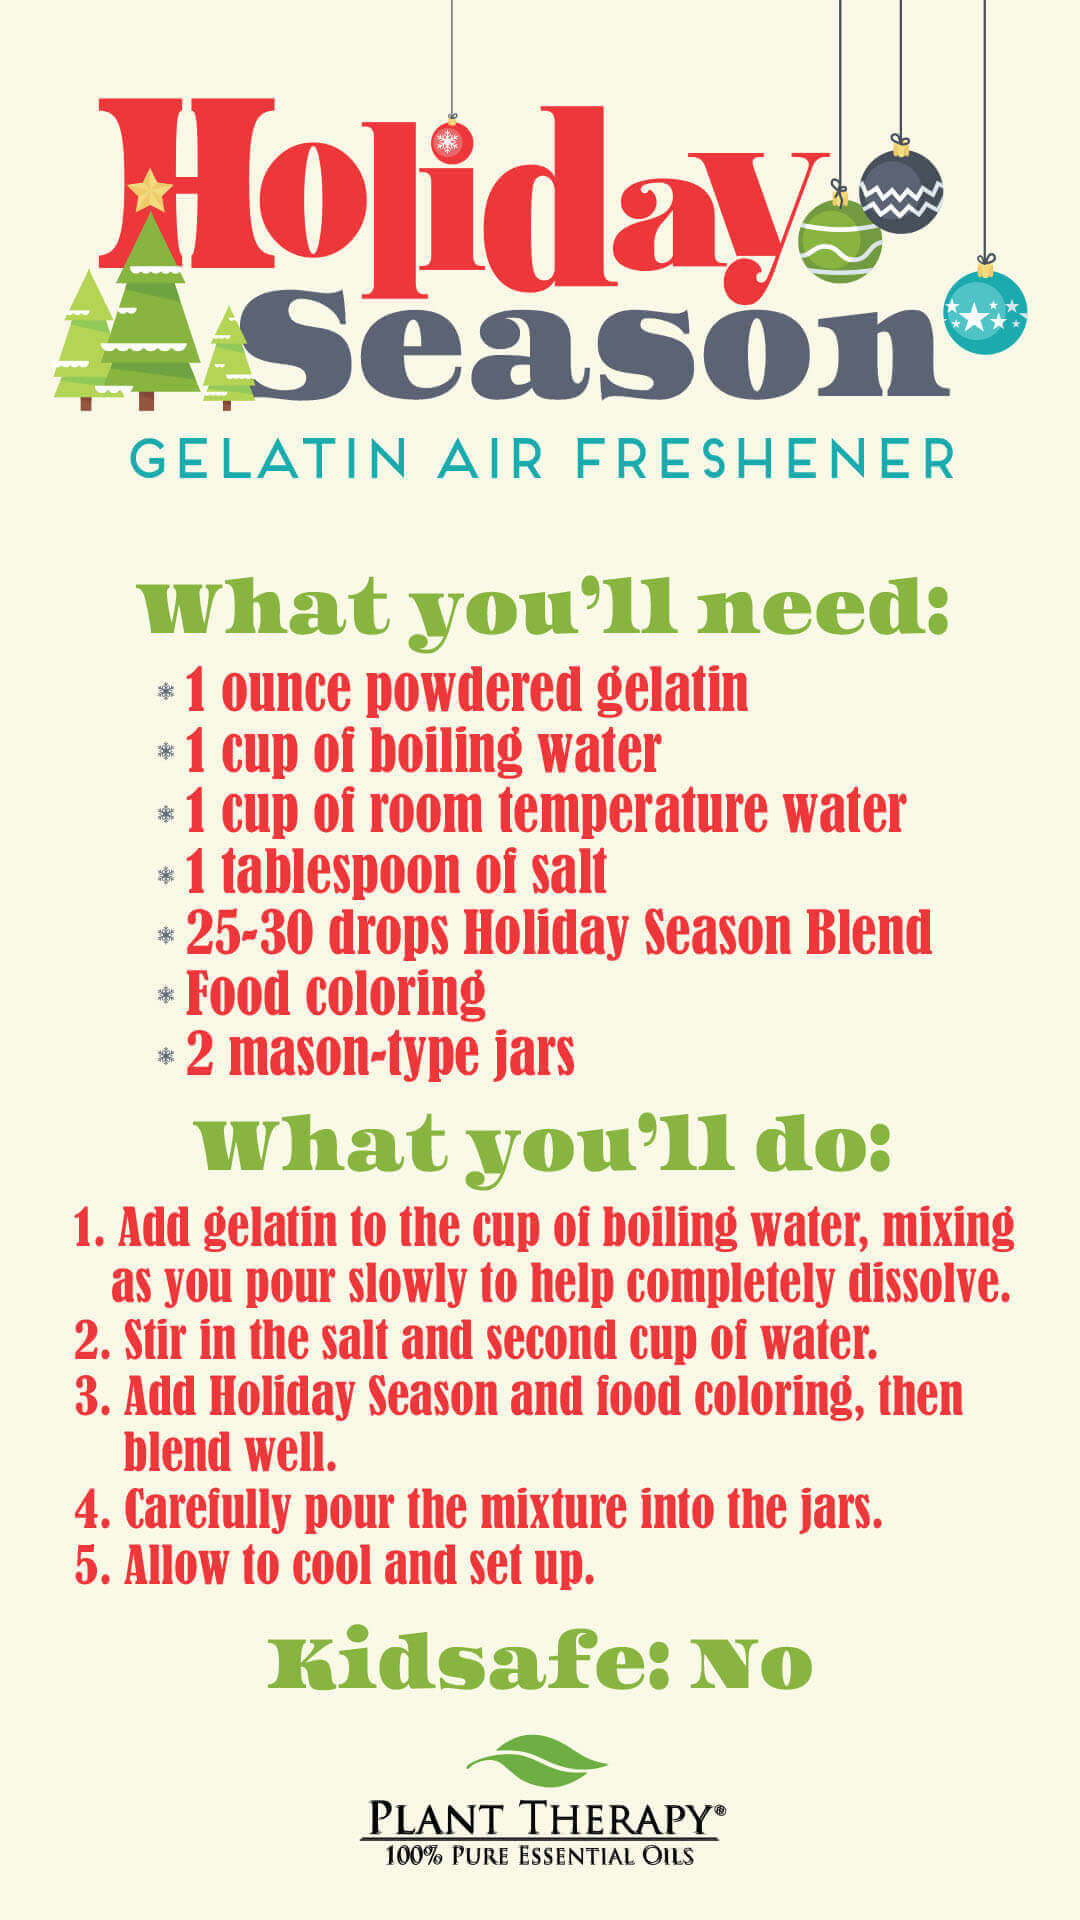 Essentials Video: Holiday Season Gelatin Air Freshener